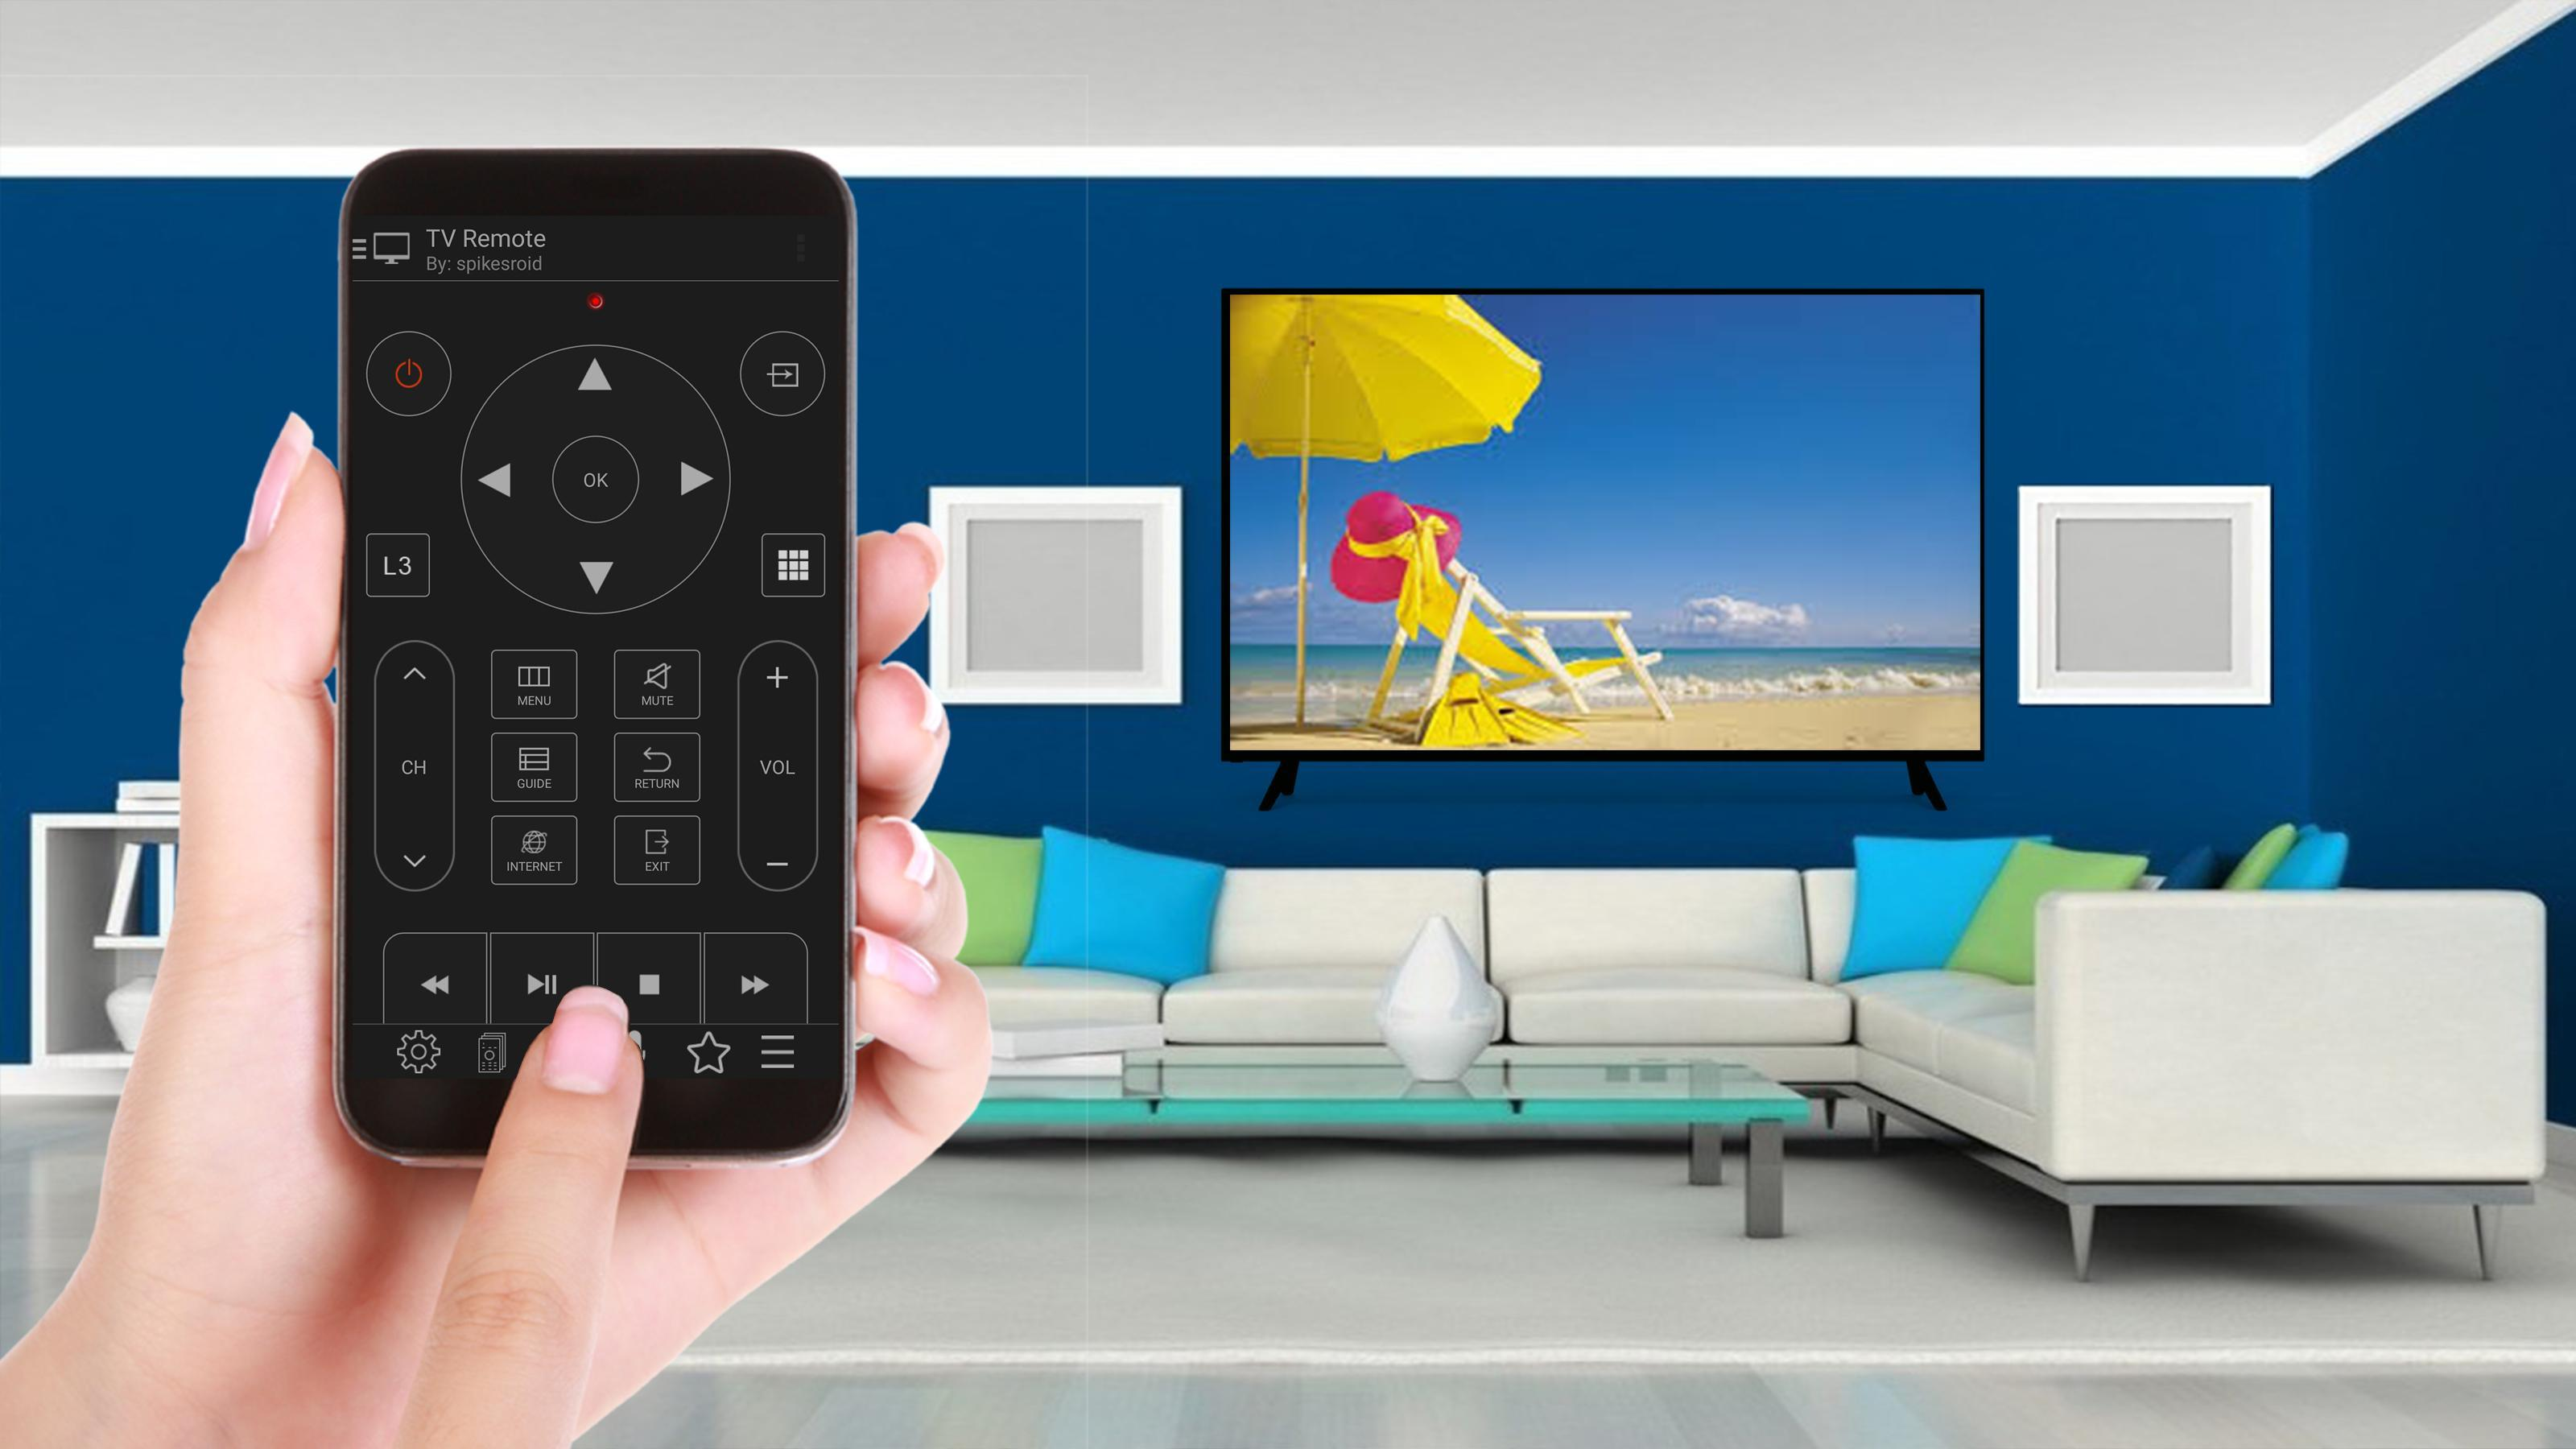 TV Remote for Sony (Smart TV Remote Control) for Android